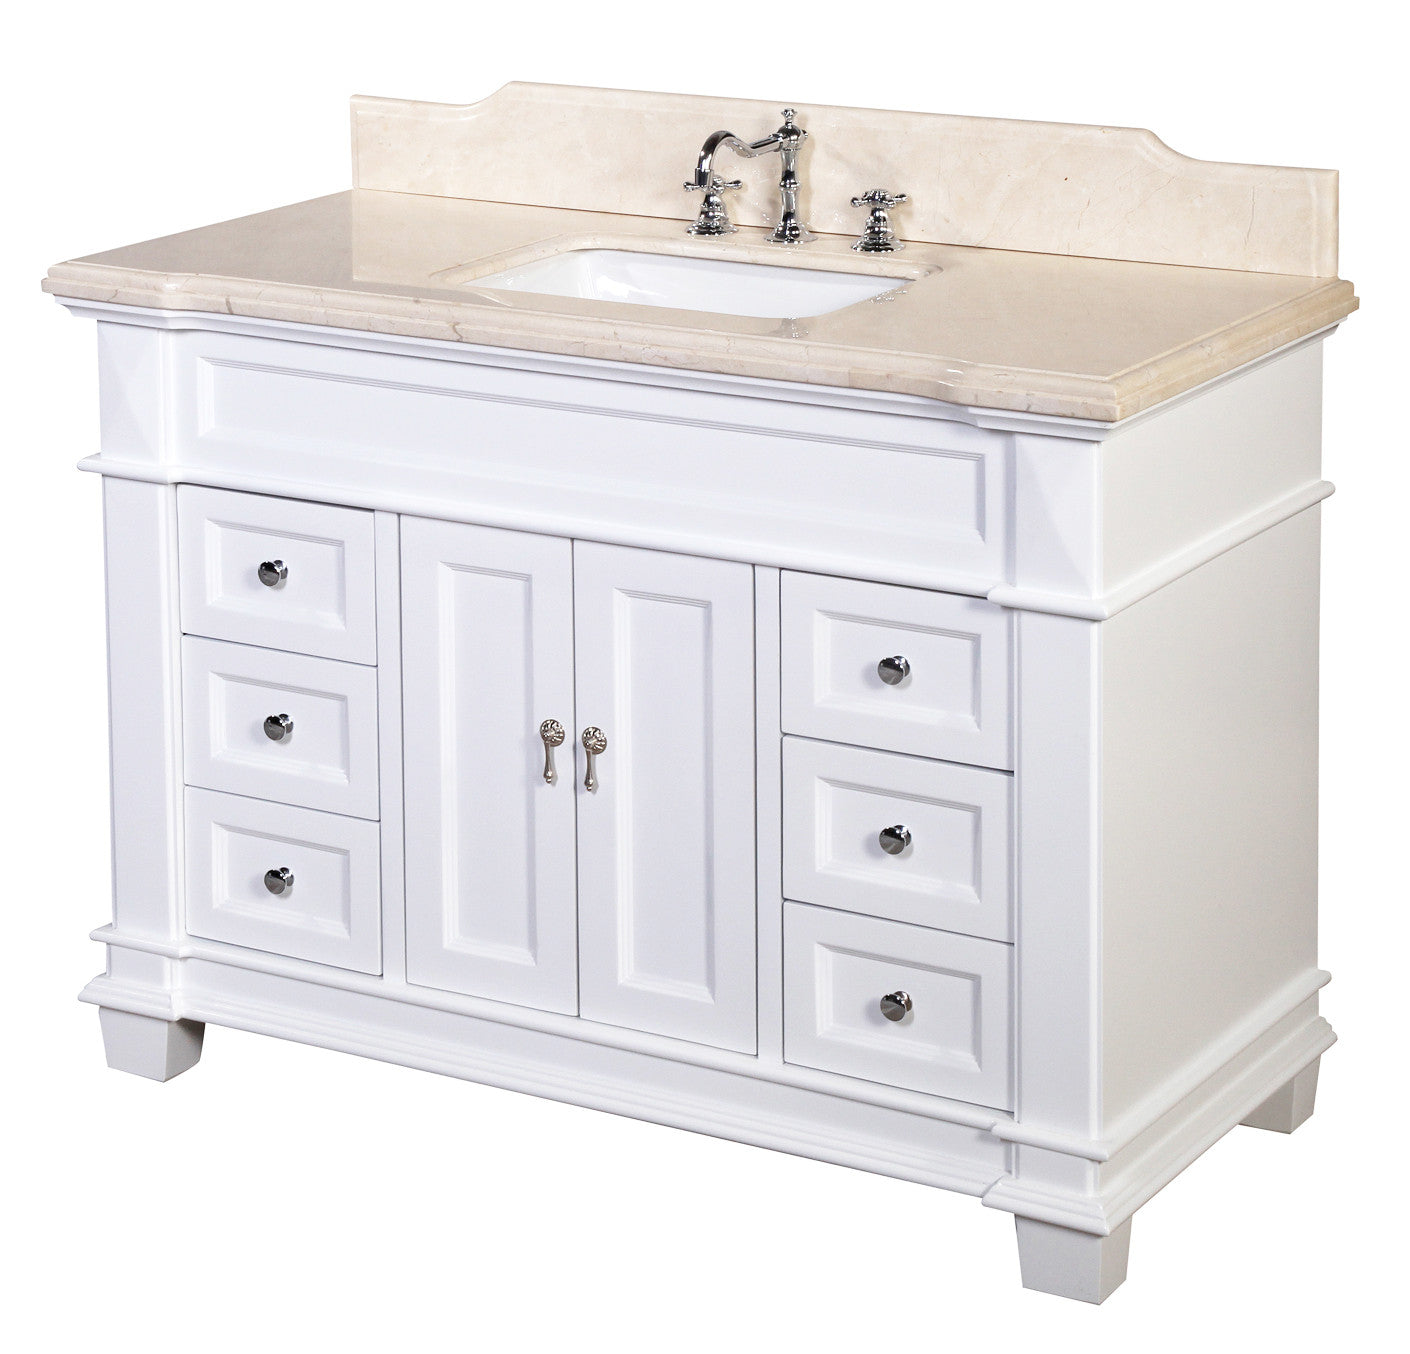 Outstanding Elizabeth 48 Inch Vanity Crema Marfil White Download Free Architecture Designs Embacsunscenecom